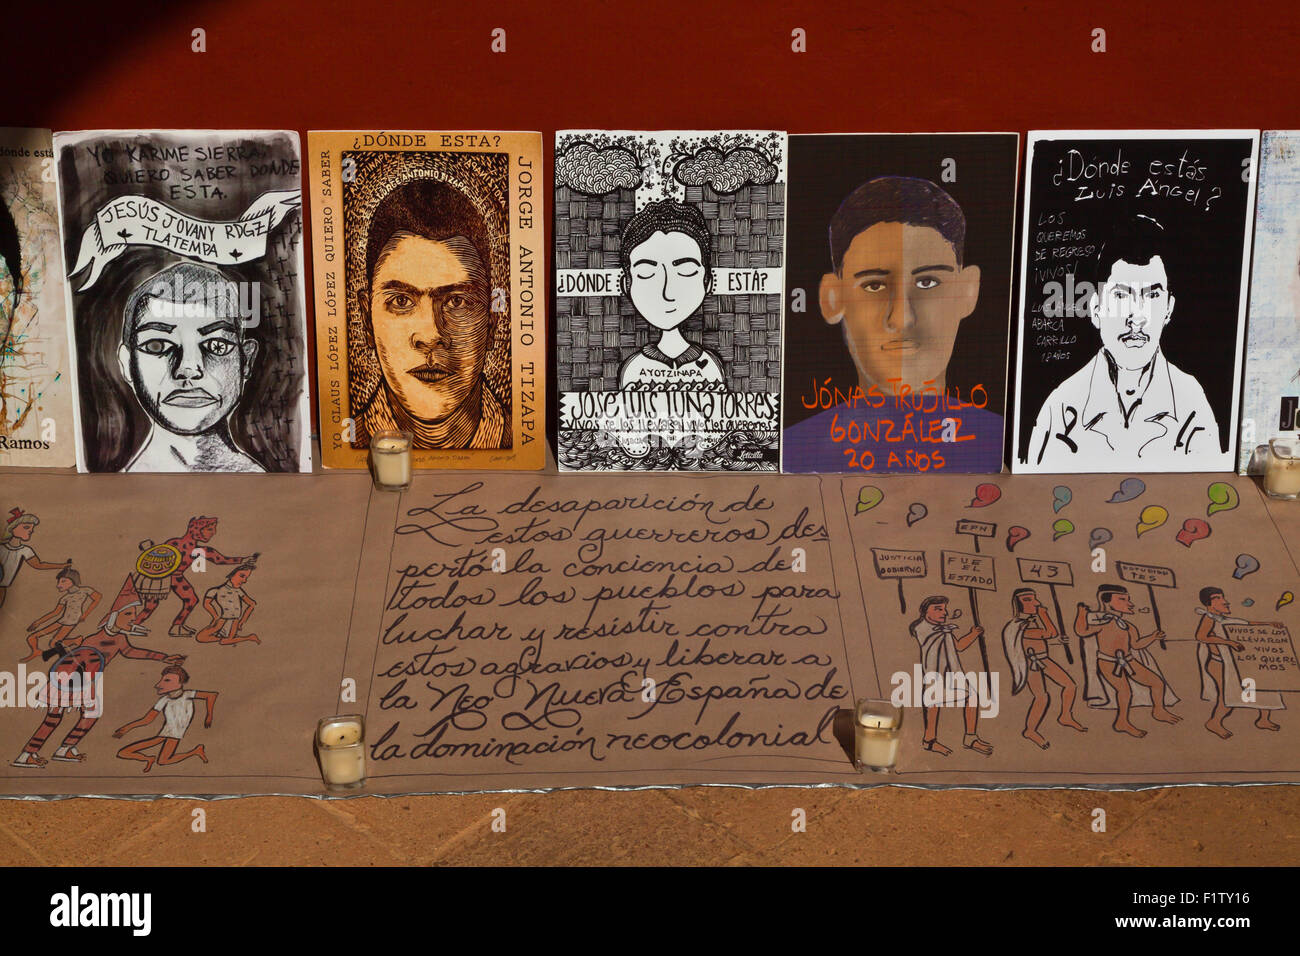 Paintings of the MEXICAN STUDENTS who were killed and disappeared  in 2014 -  OAXACA - Stock Image